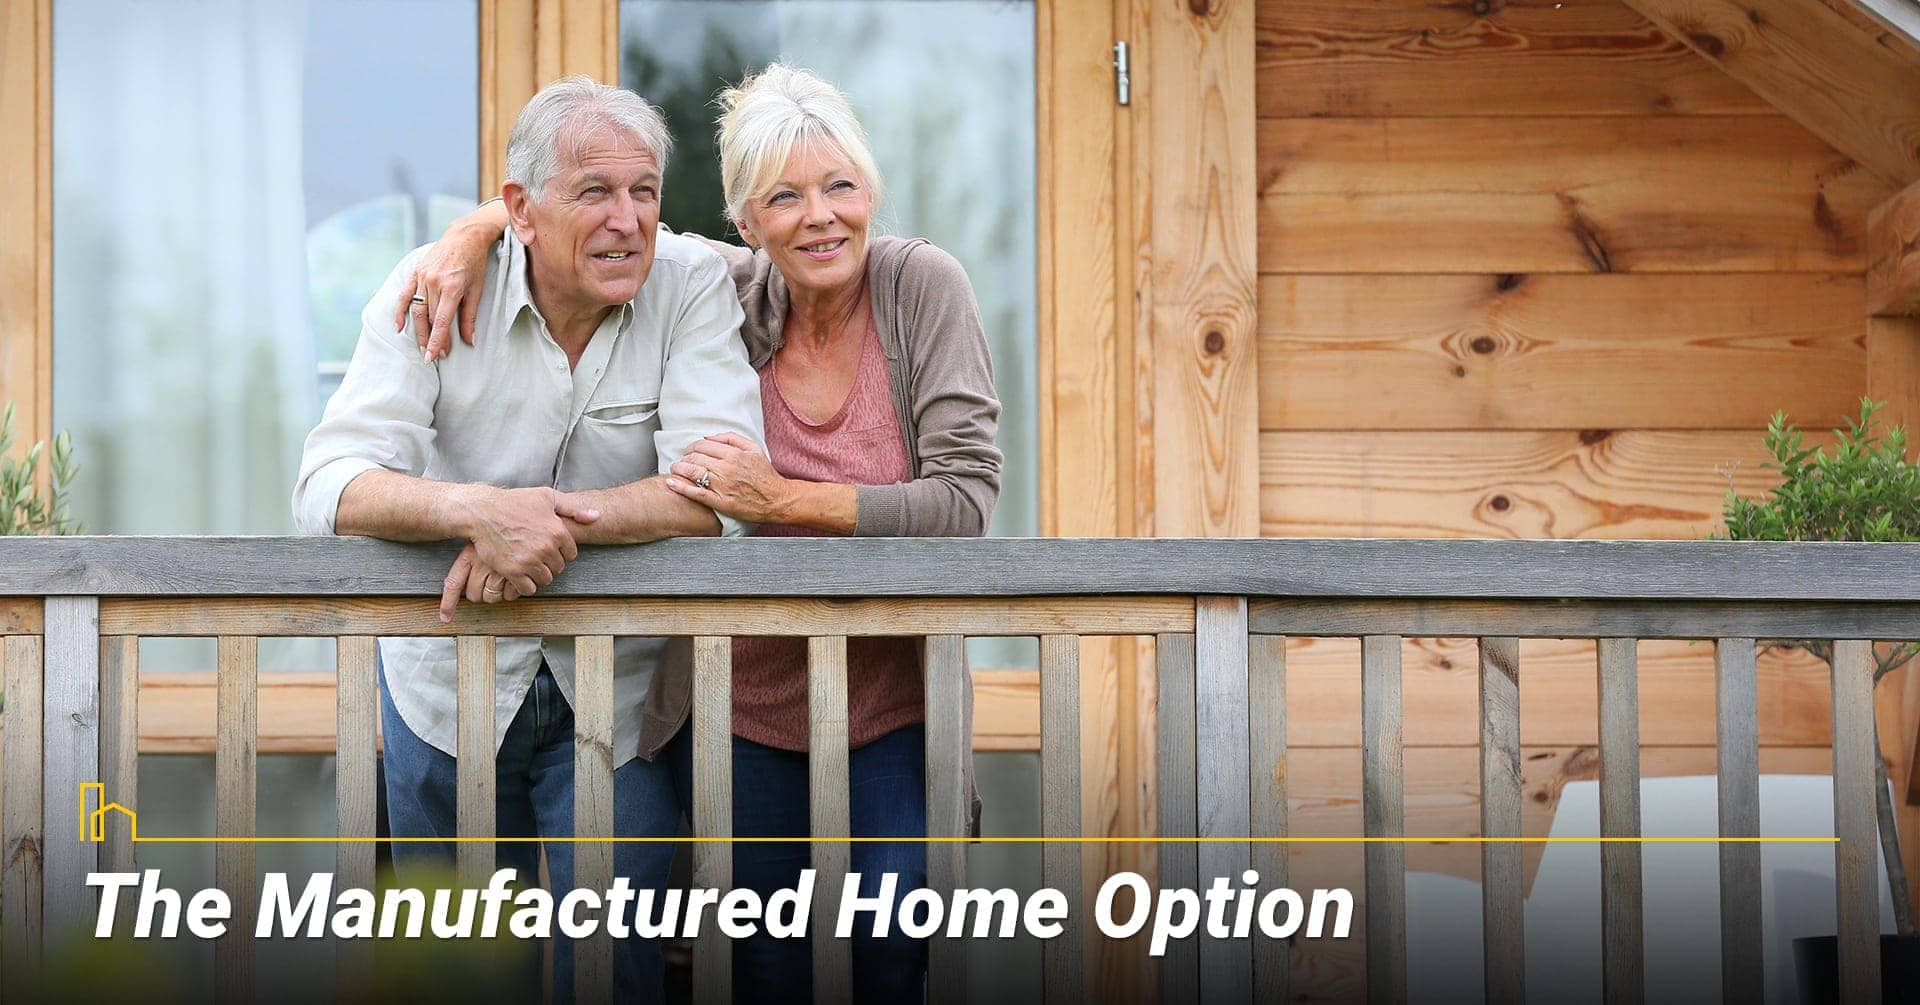 The Manufactured Home Option, thinking about buying a manufactured home